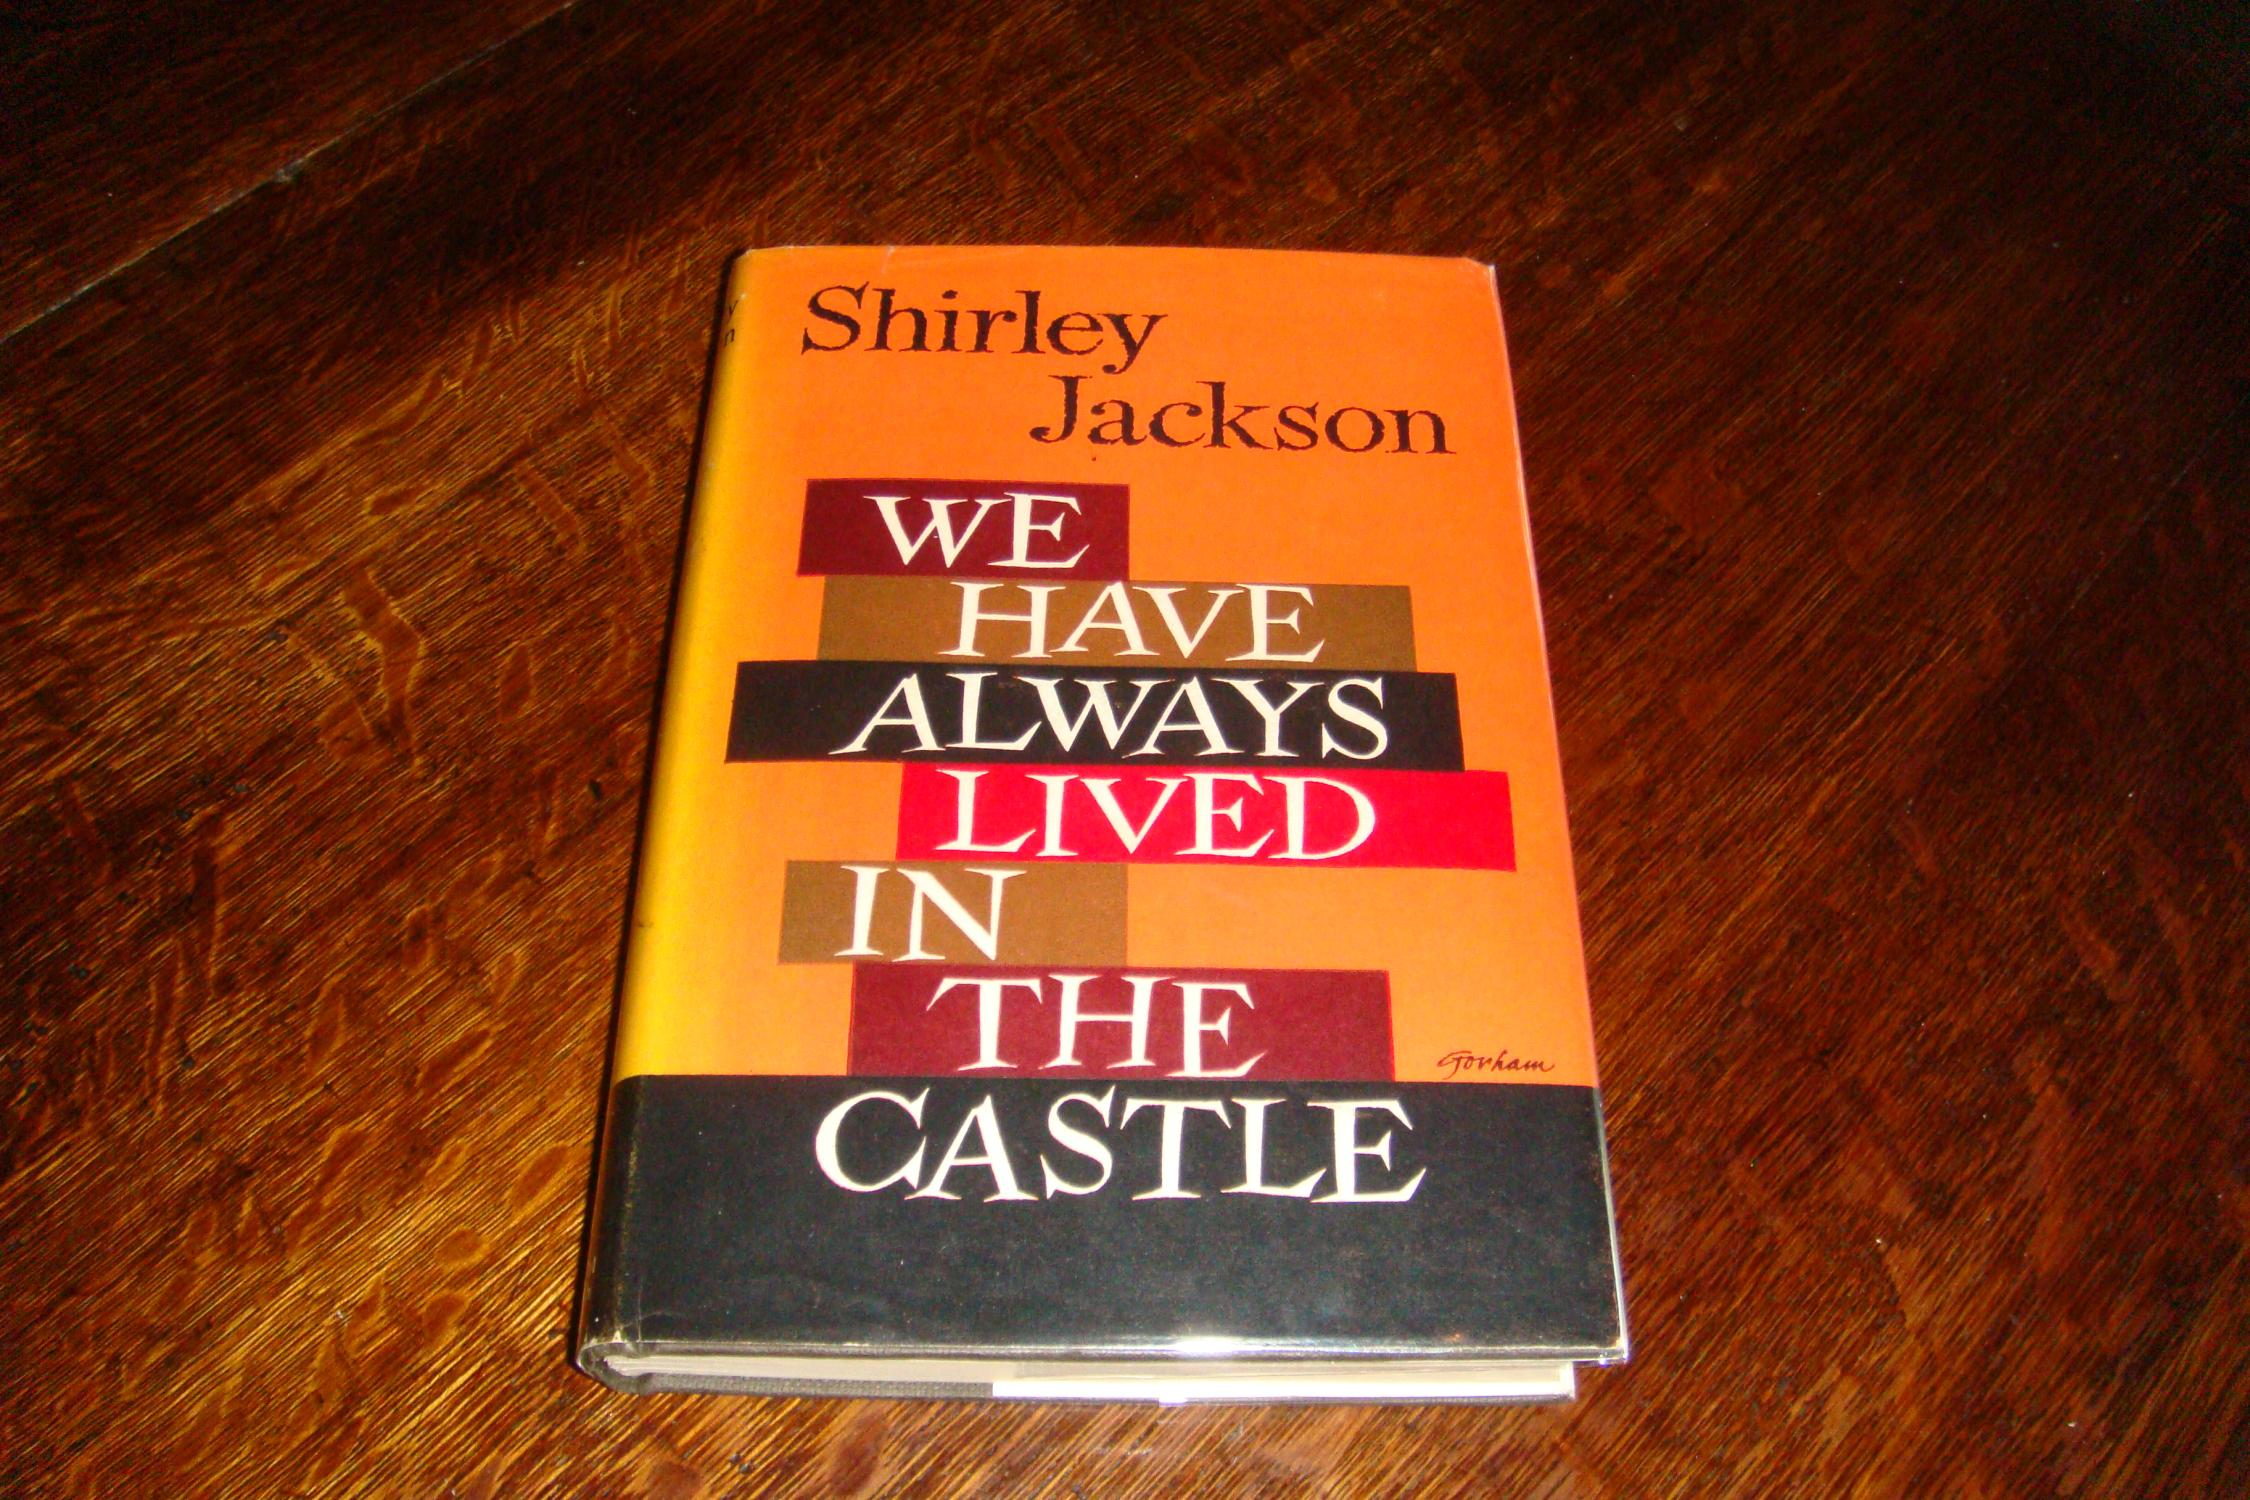 an analysis of we have always lived in the castle by jackson Brian greene has shirley jackson on the brain, and he's remembering her final book they always lived in the castle.